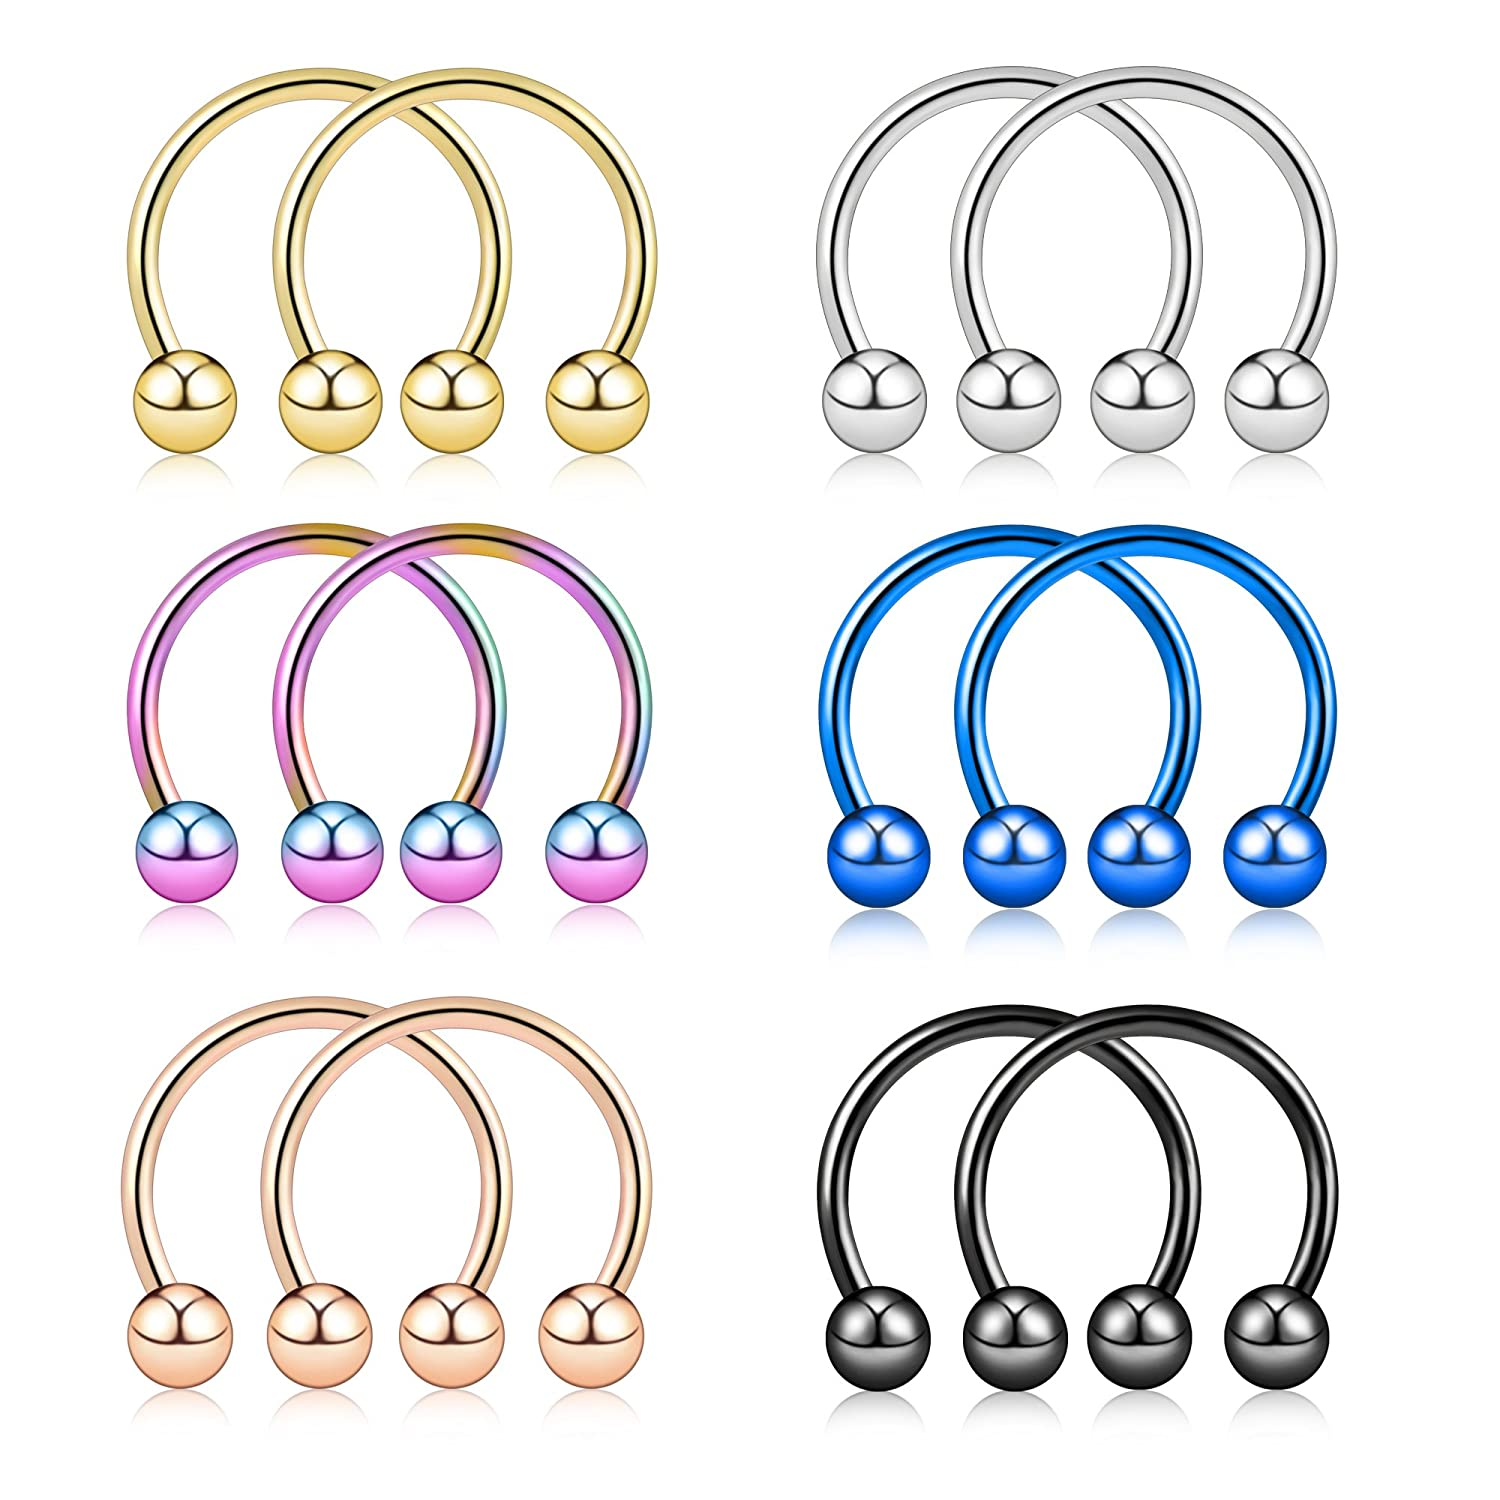 Tornito 12PCS-30PCS 14G 16G Stainless Steel Nose Rings Horseshoe Hoop Rings Septum Lip Cartilage Helix Tragus Piercing Ring NP09C-16G